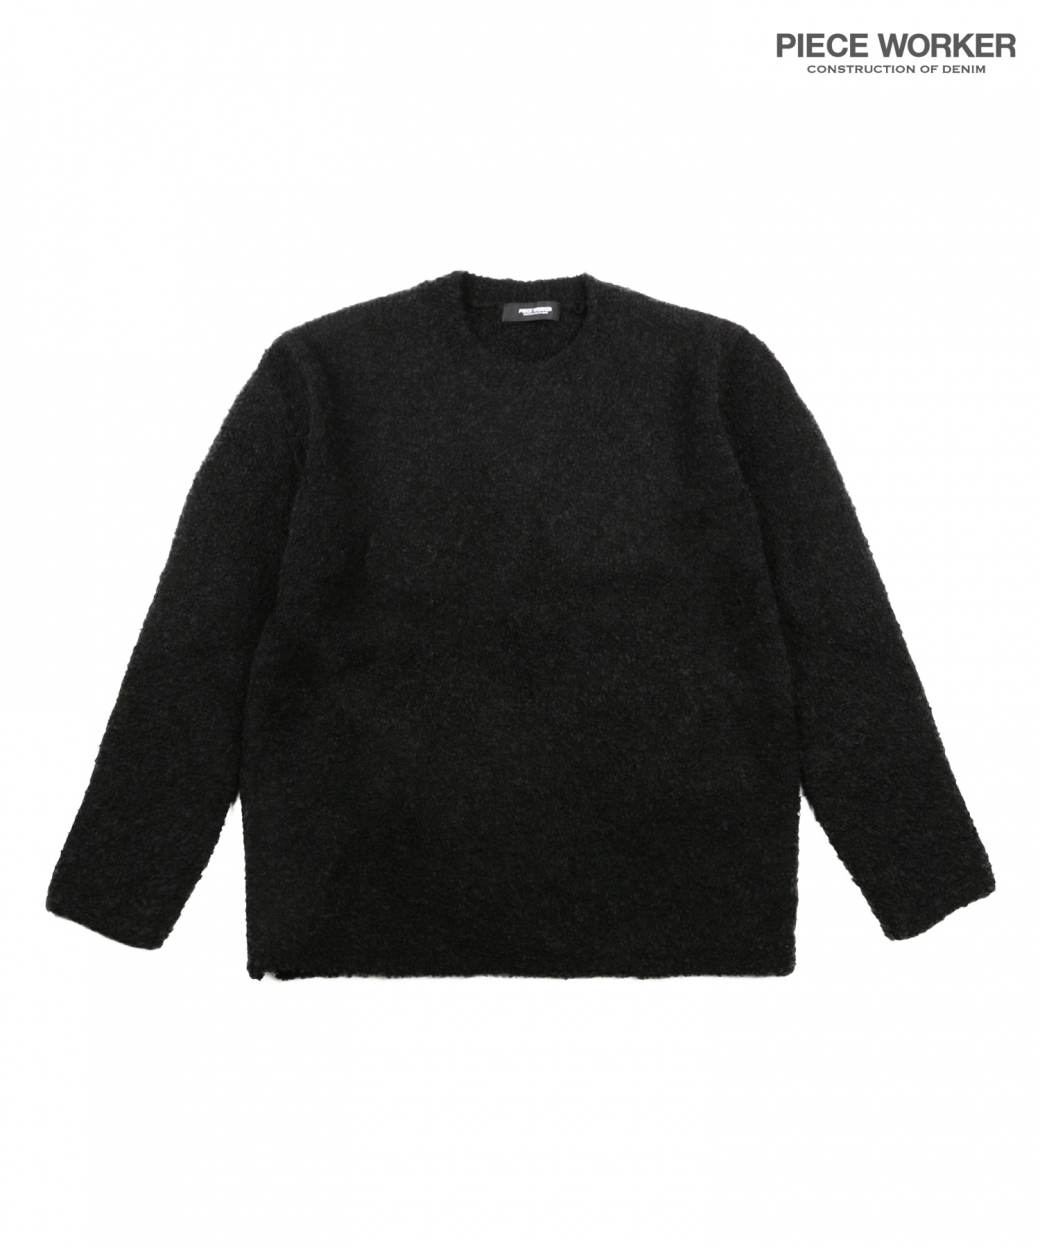 Supple Knit - Black